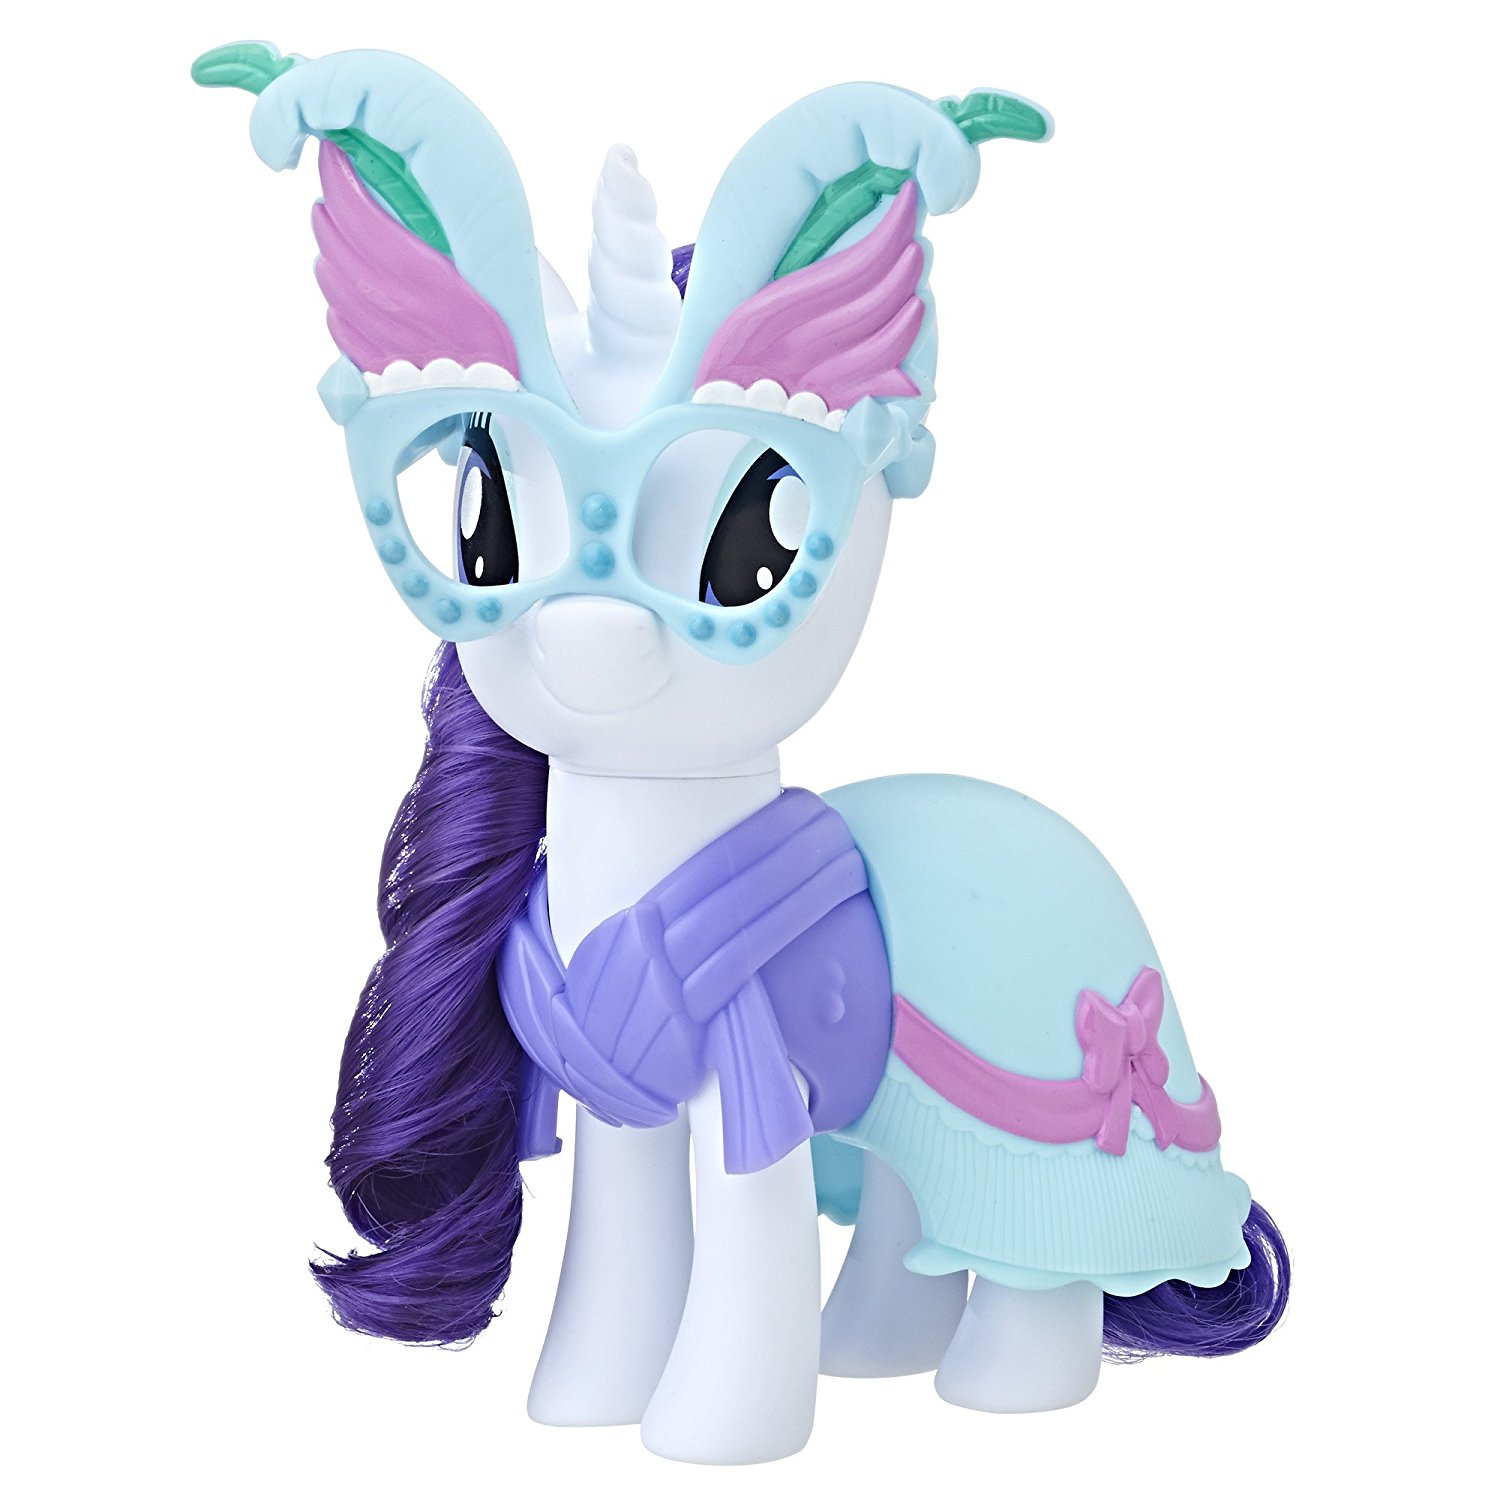 Image My Little Pony The Movie Fashion Style Rarity My Little Pony Friendship Is